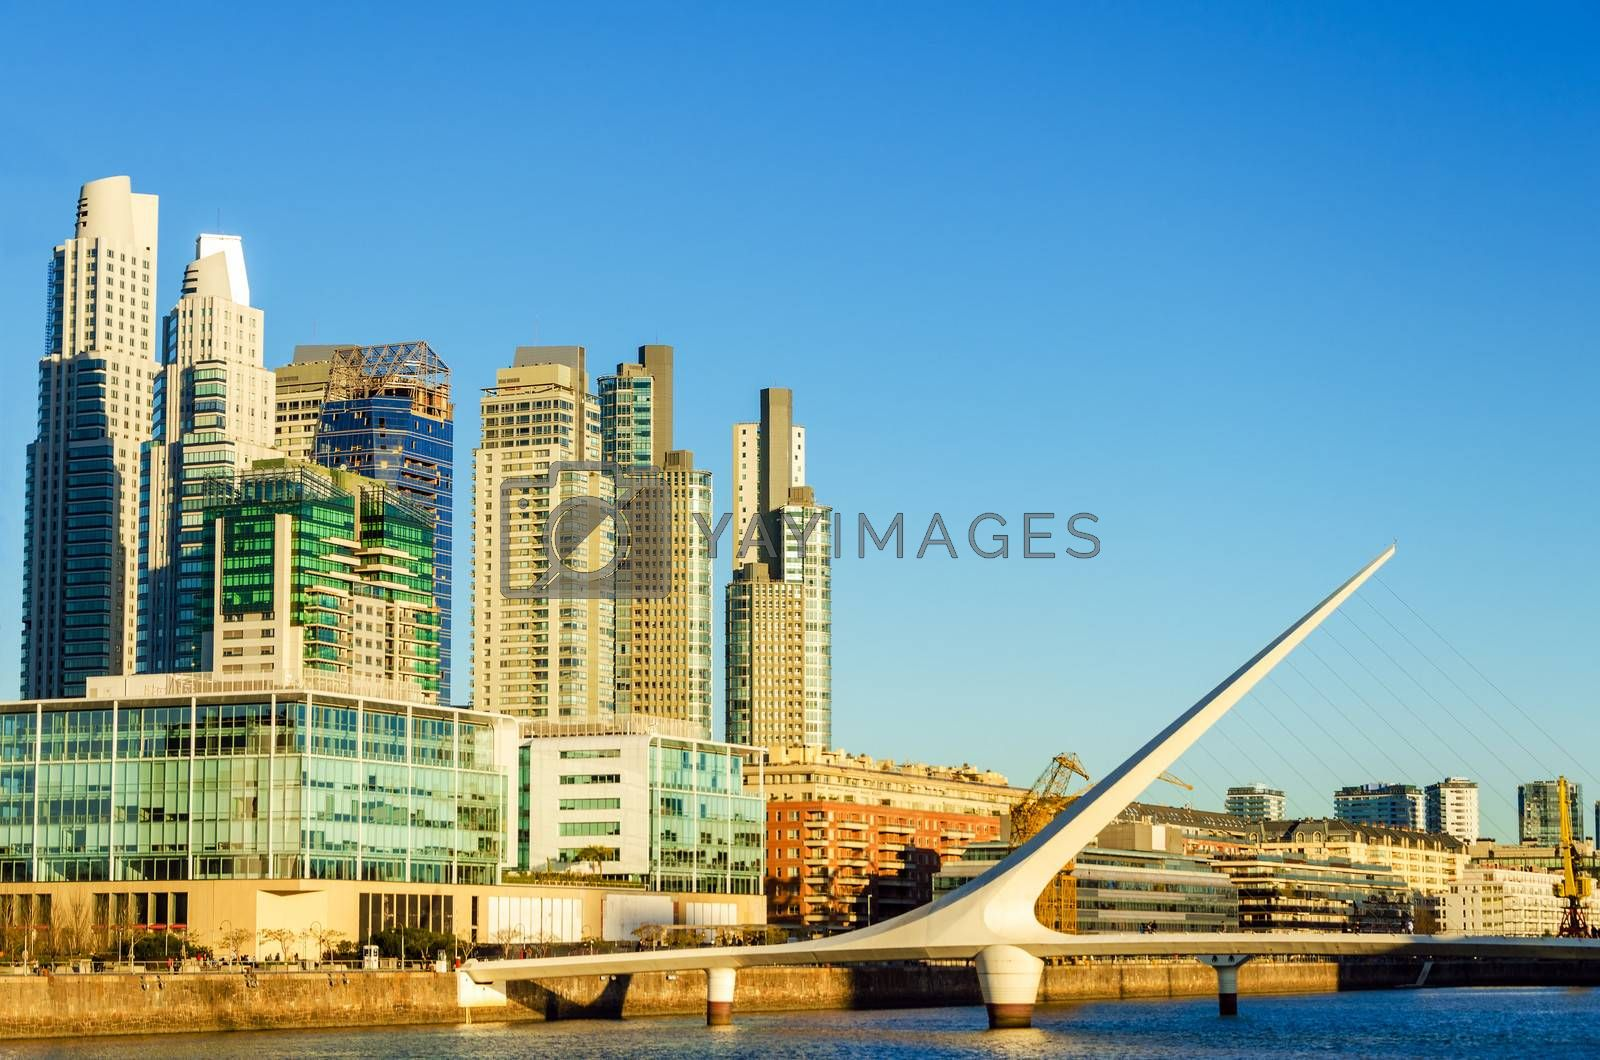 Skyscraper and the Women's Bridge in the upscale neighborhood of Puerto Madero in Buenos Aires